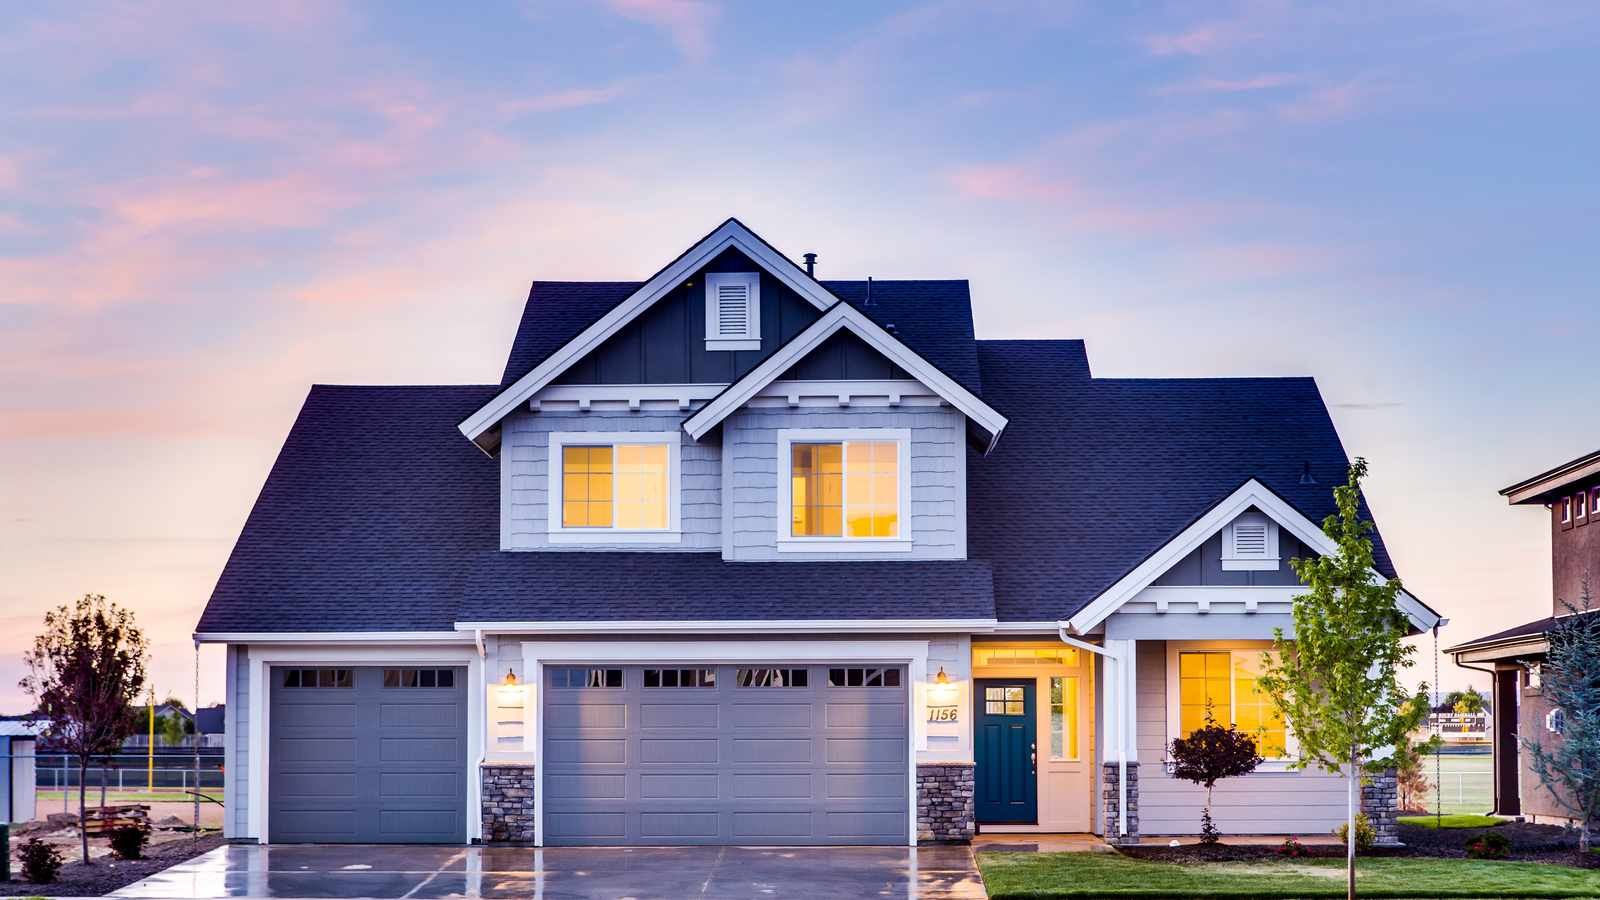 Tips To Renovate Your Home For Retirement